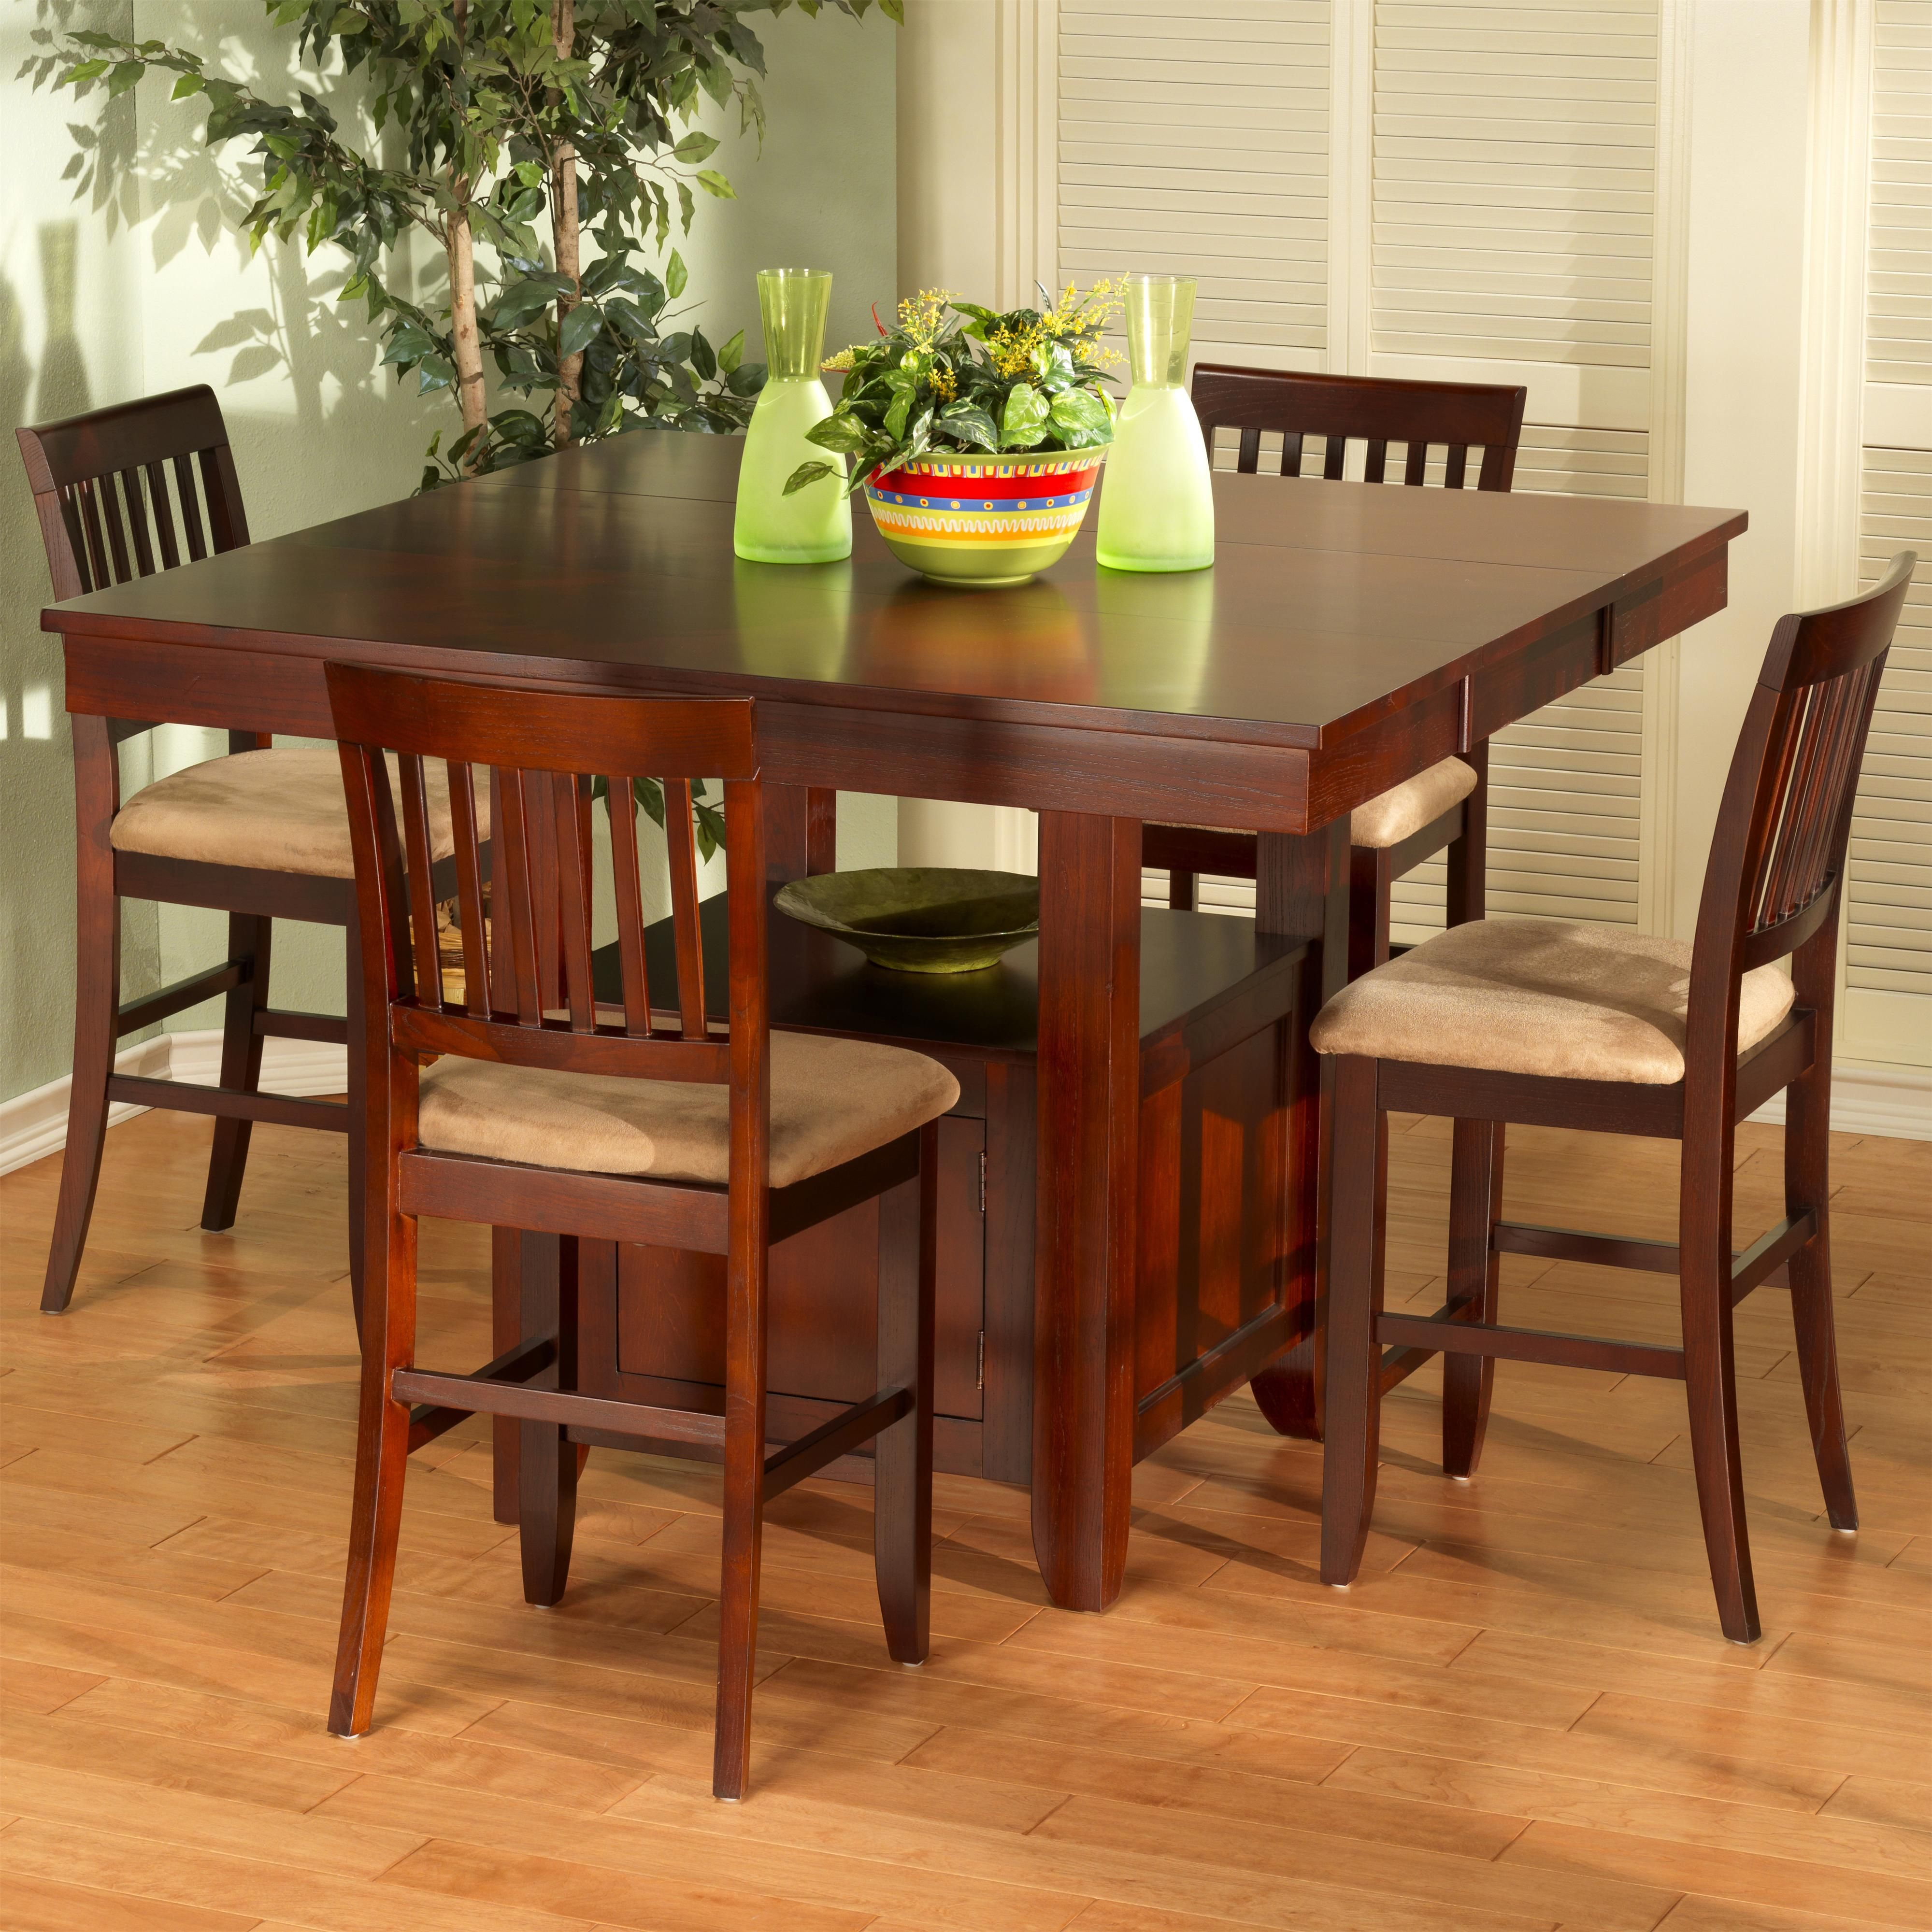 Counter Height Dining Set W Storage & Leaf  Counter Height Pleasing Pub Height Dining Room Table Inspiration